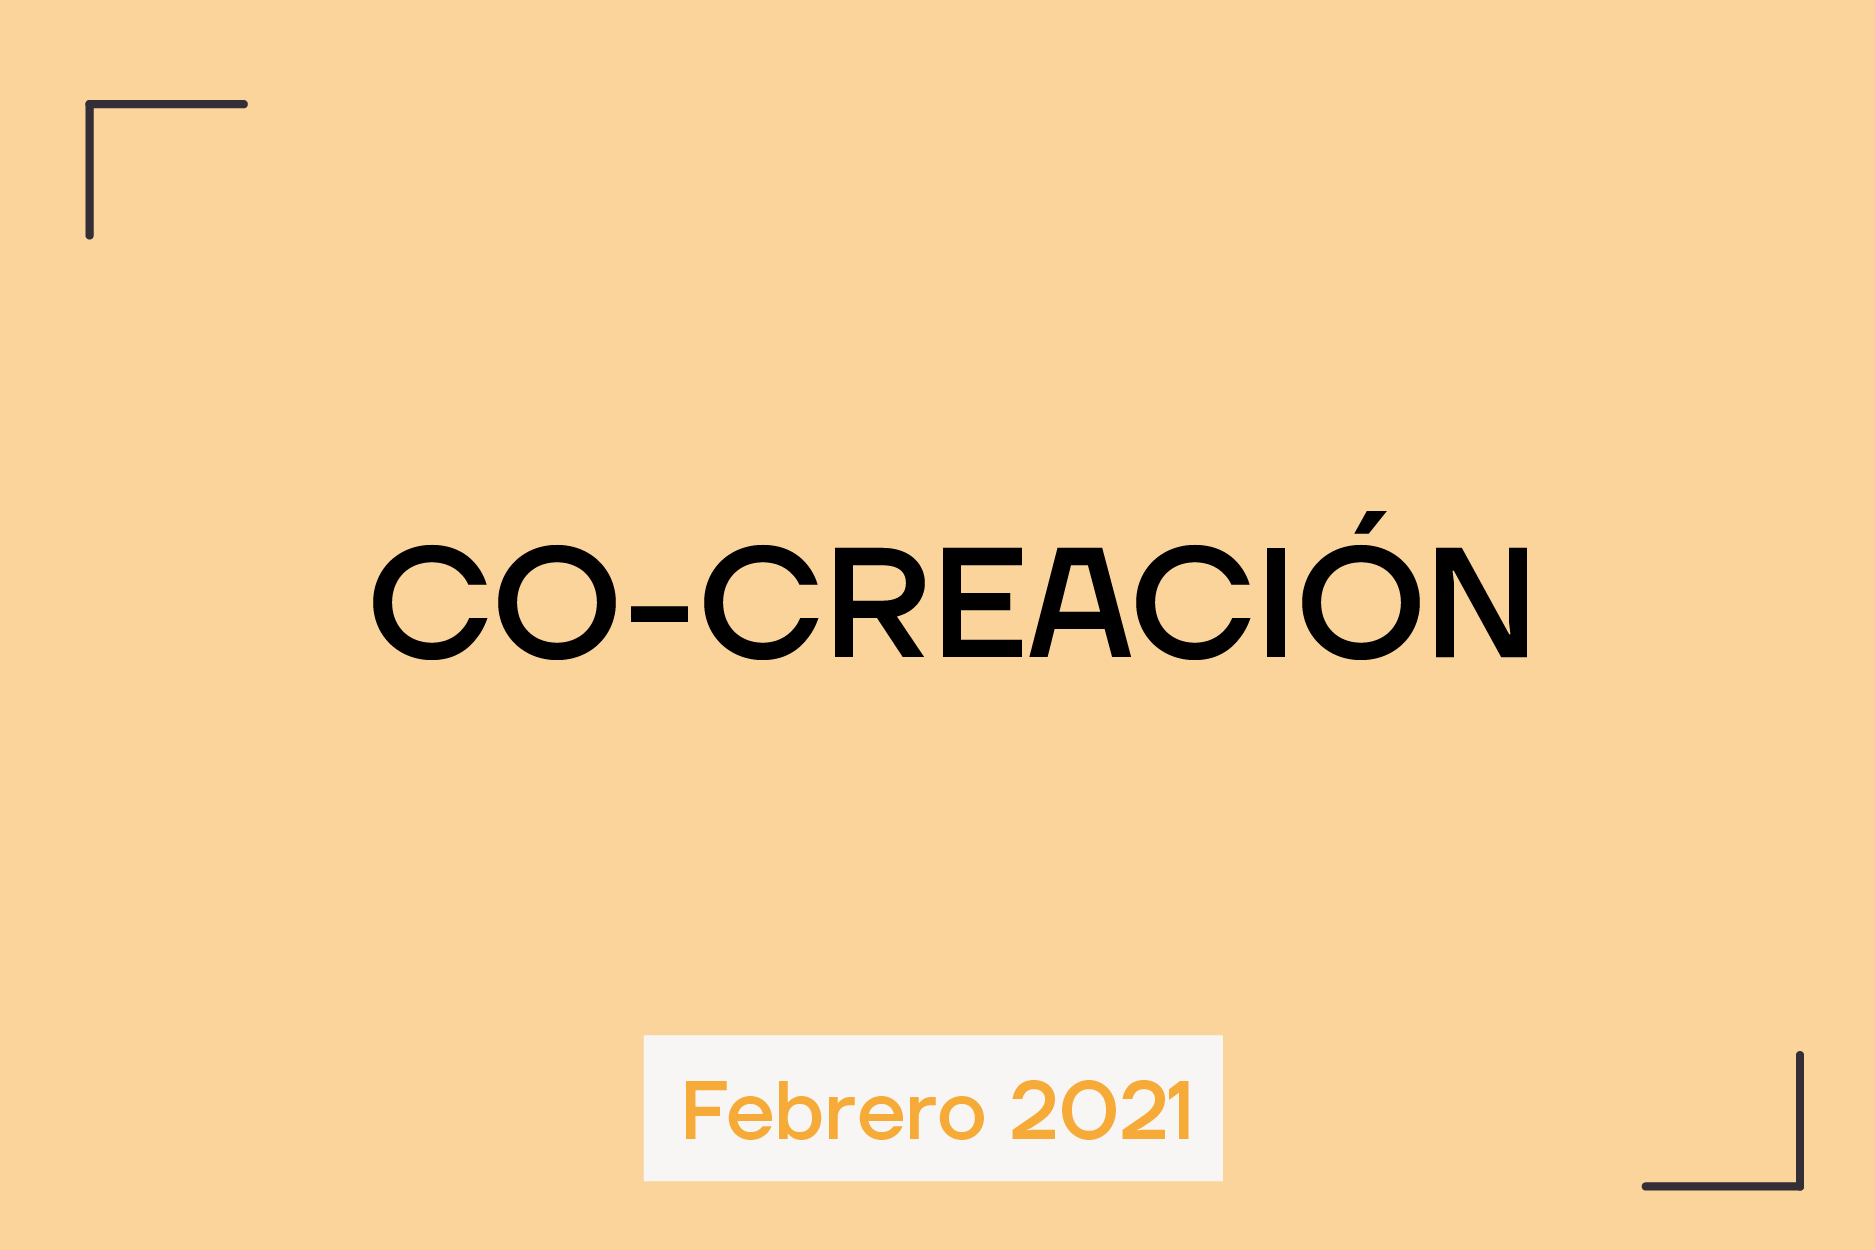 co-creacion febrero 2021